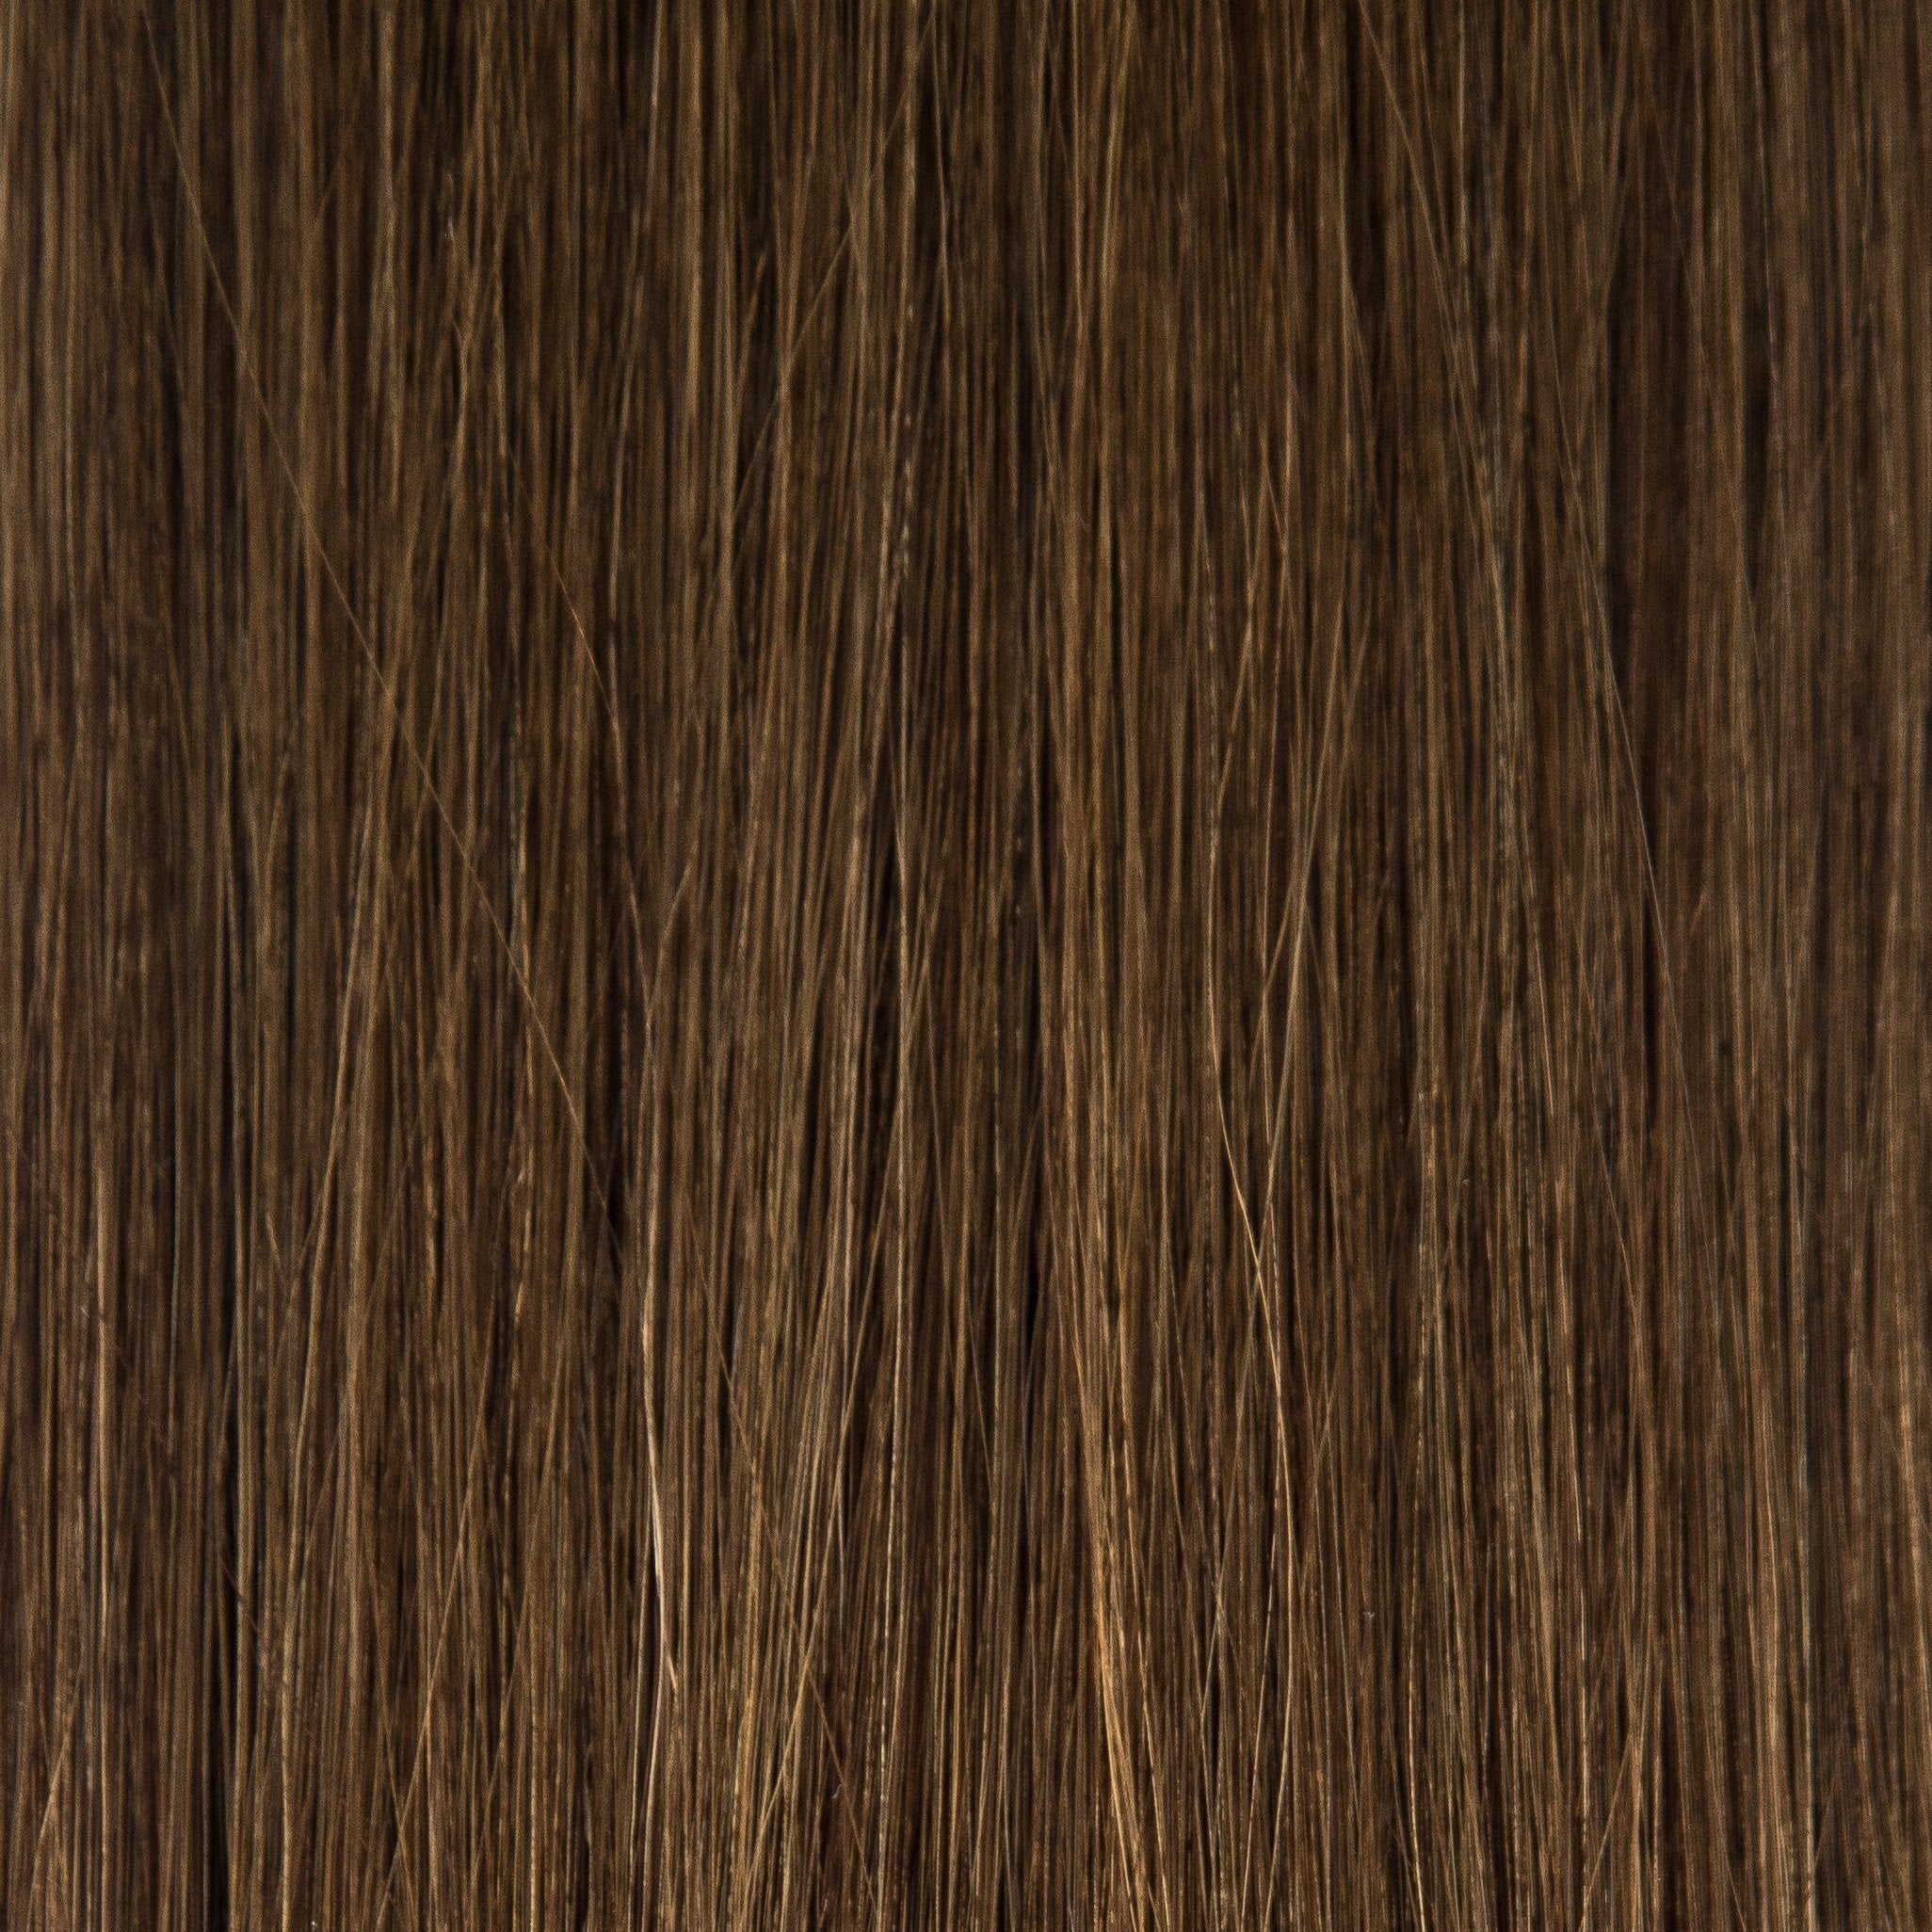 Clip-In - Laced Hair Clip-In Extensions #5 (Caramel)